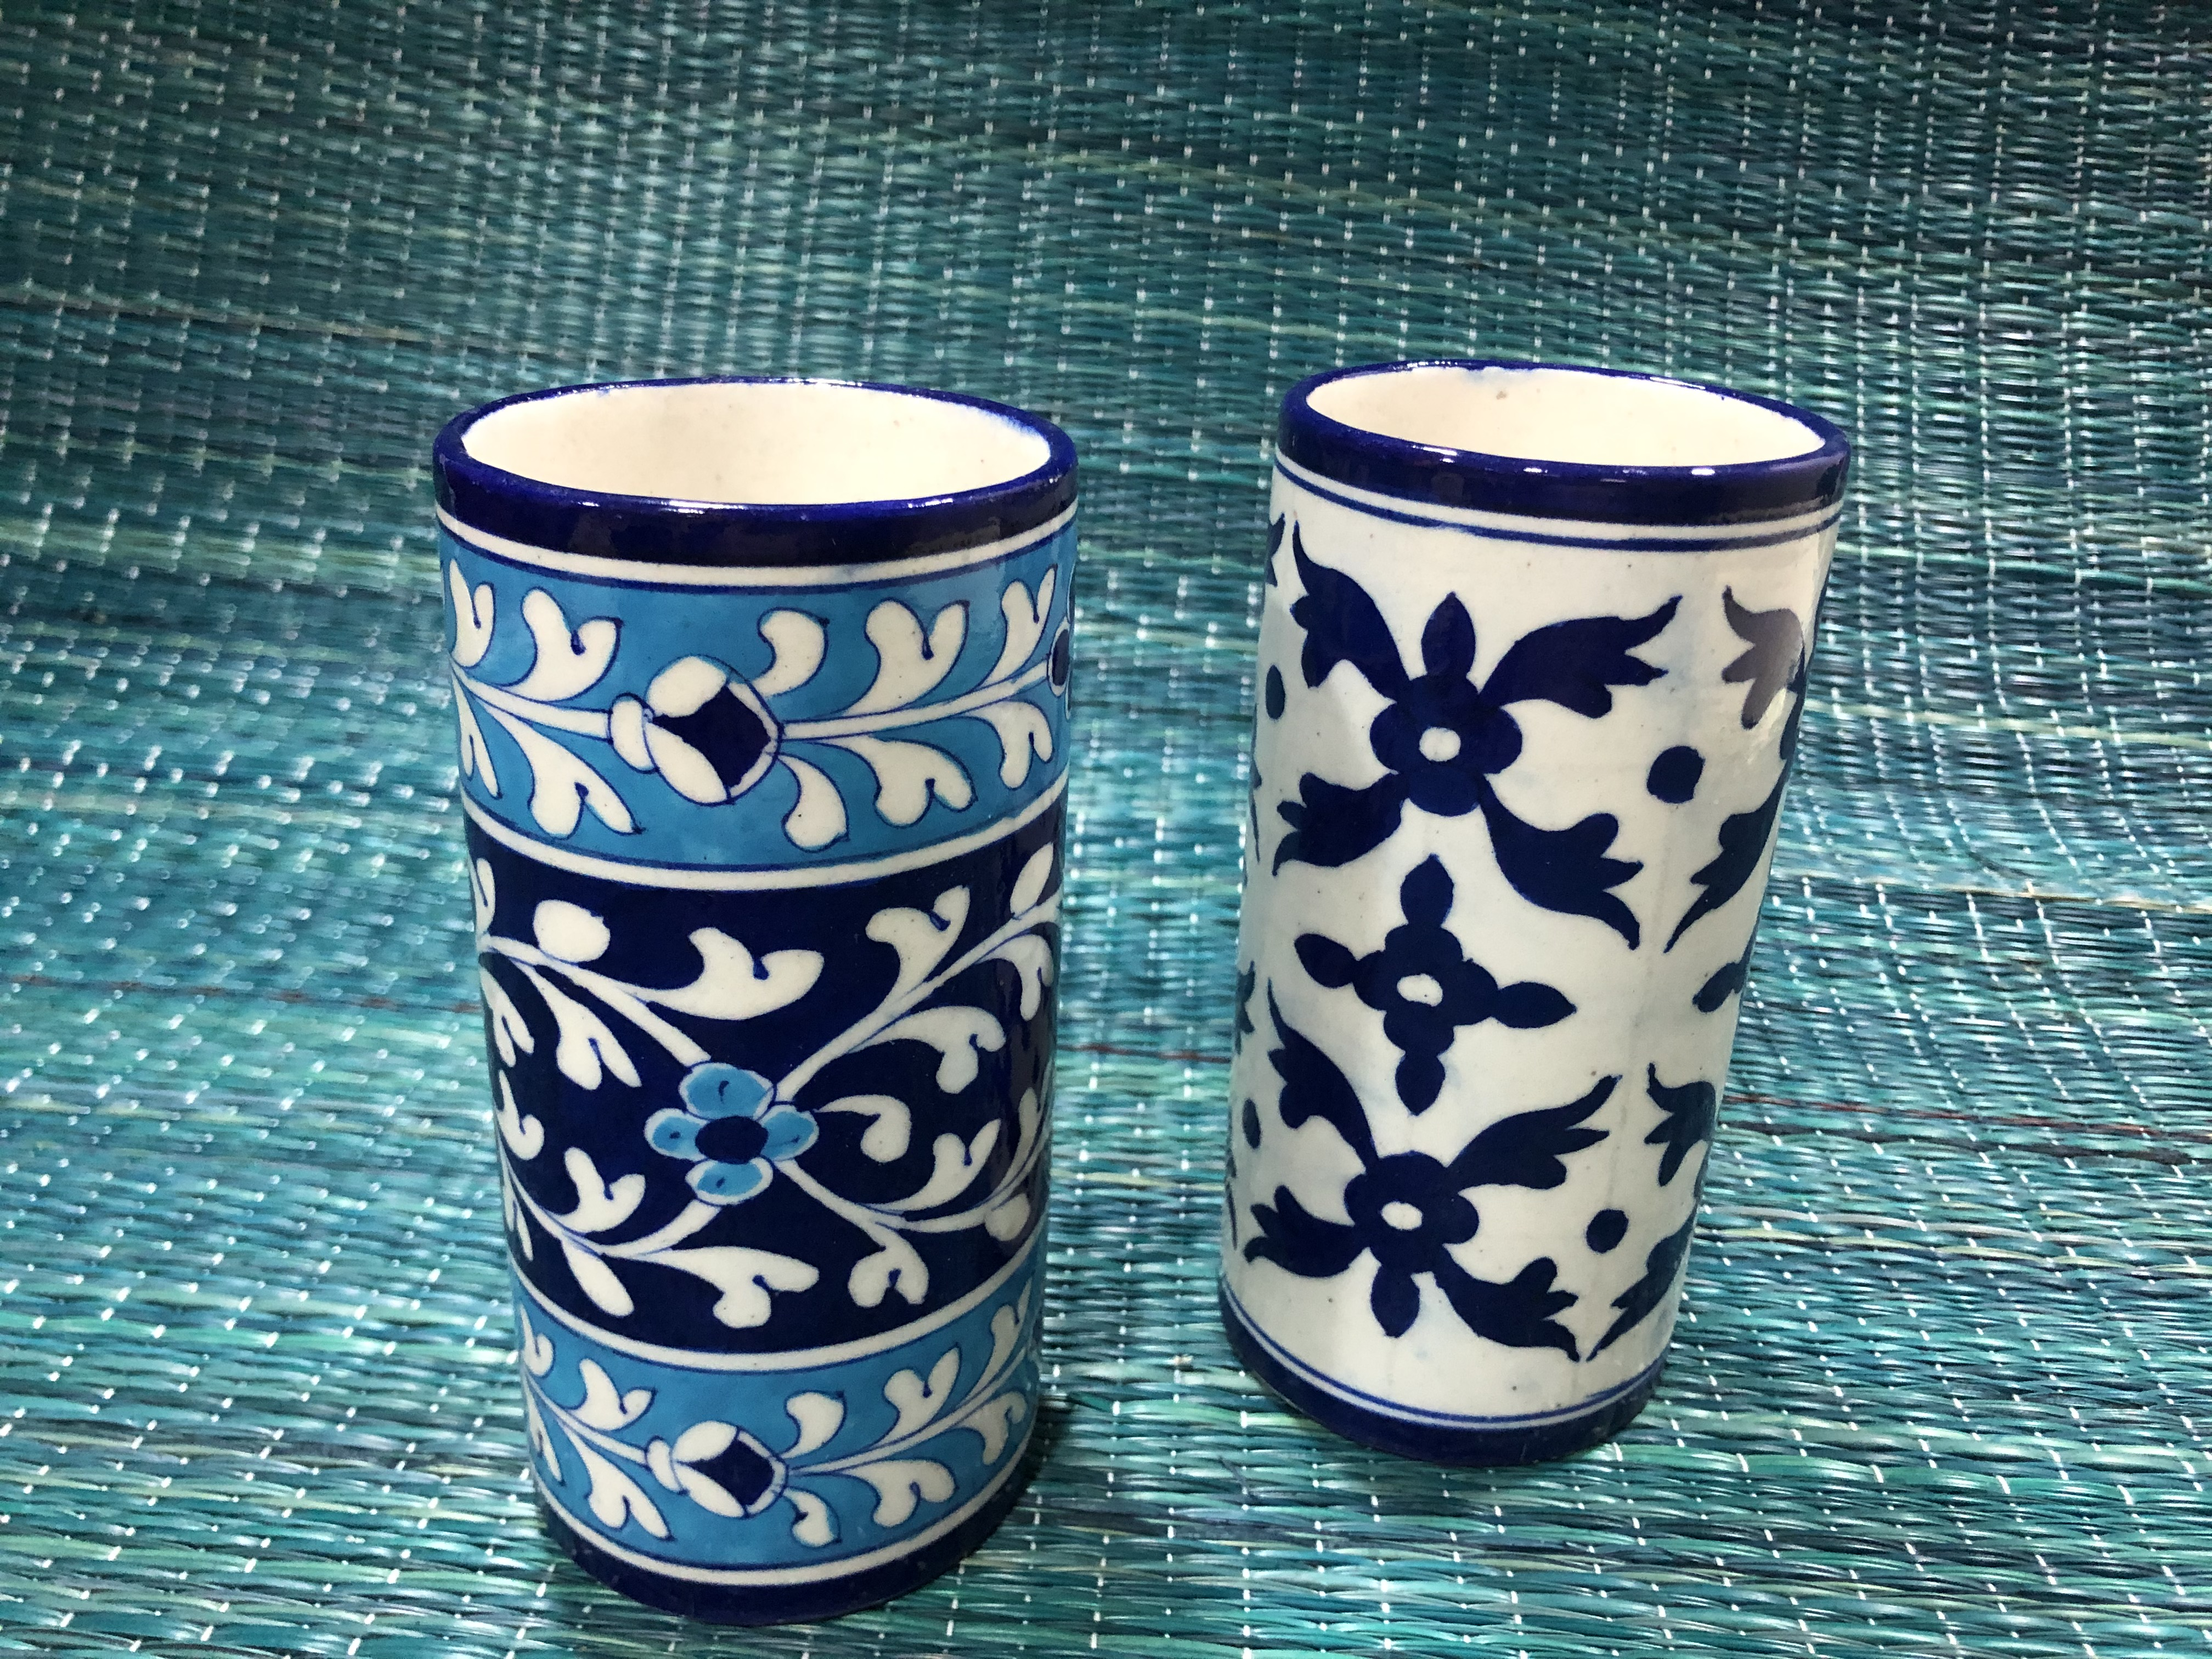 Vase (various options available)